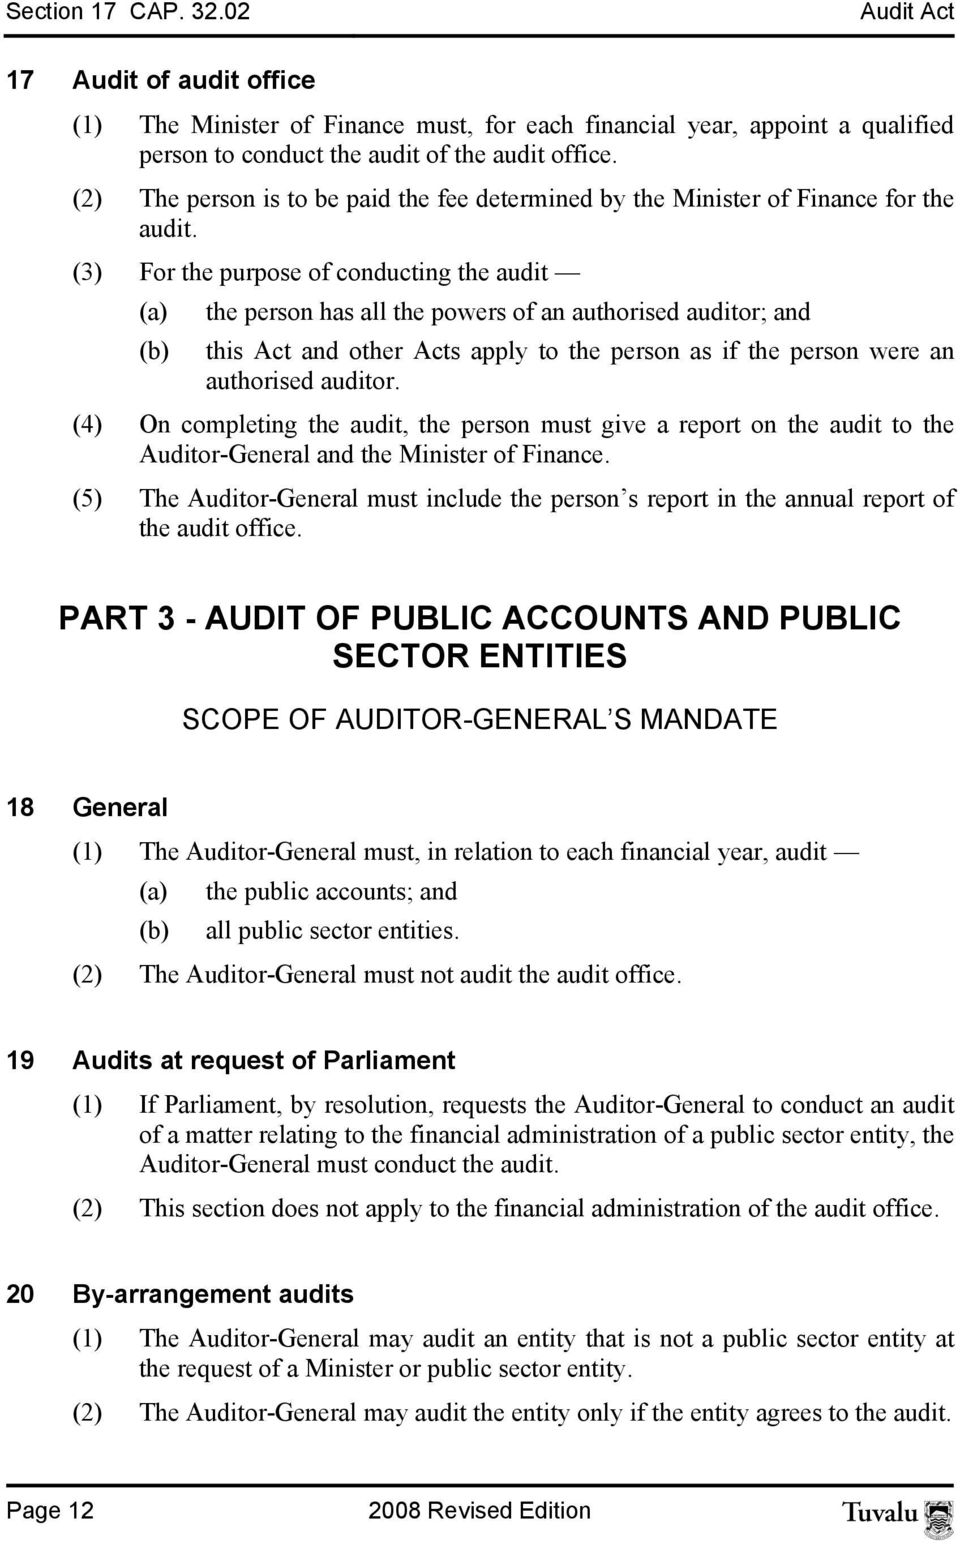 (3) For the purpose of conducting the audit (a) the person has all the powers of an authorised auditor; and (b) this Act and other Acts apply to the person as if the person were an authorised auditor.